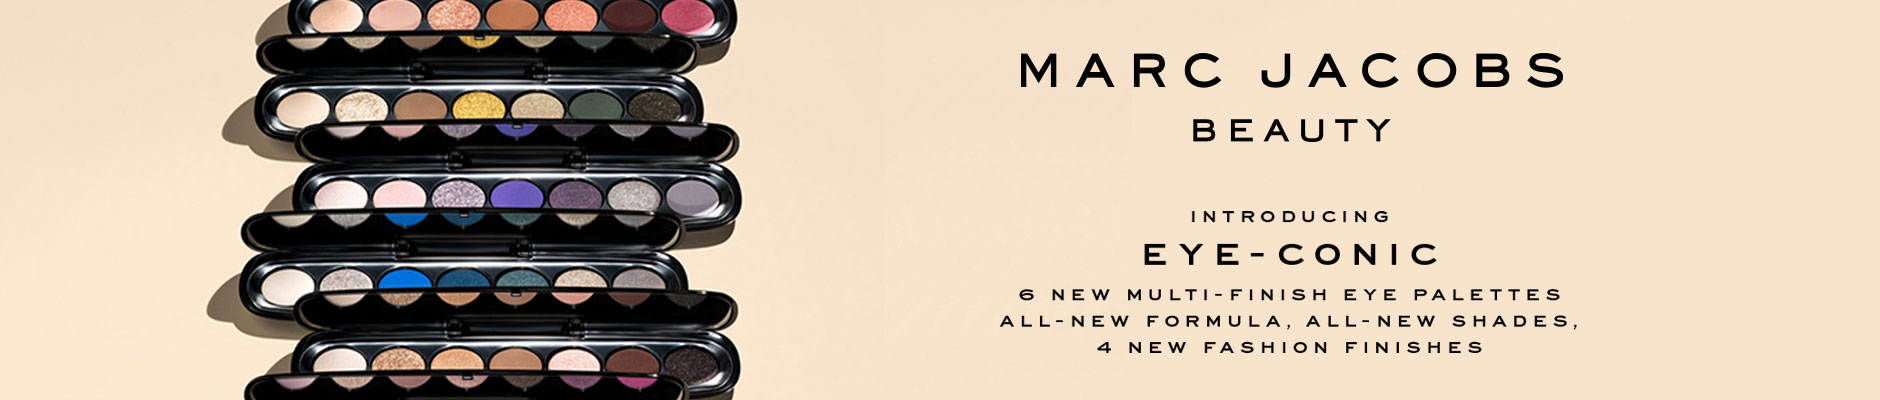 Marc Jacobs Beauty: Introducing Eye-Conic - 6 new multi-finish eye palettes all-new formula, all-new shades, 4 new fashion finishes